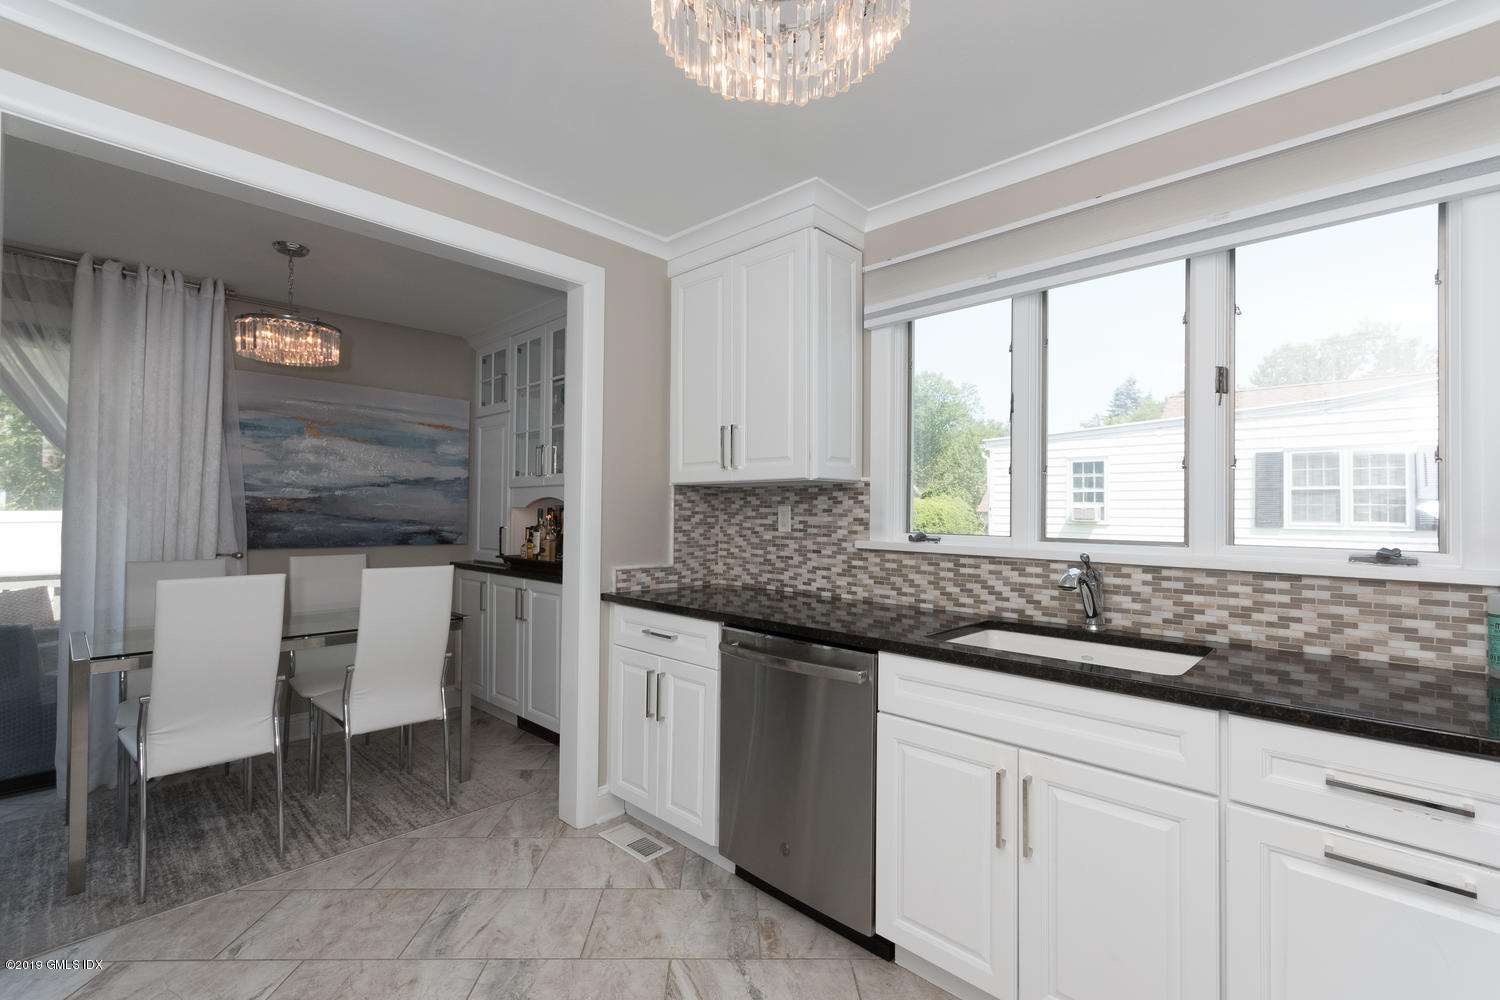 15 Heusted Drive,Old Greenwich,Connecticut 06870,4 Bedrooms Bedrooms,2 BathroomsBathrooms,Single family,Heusted,107277